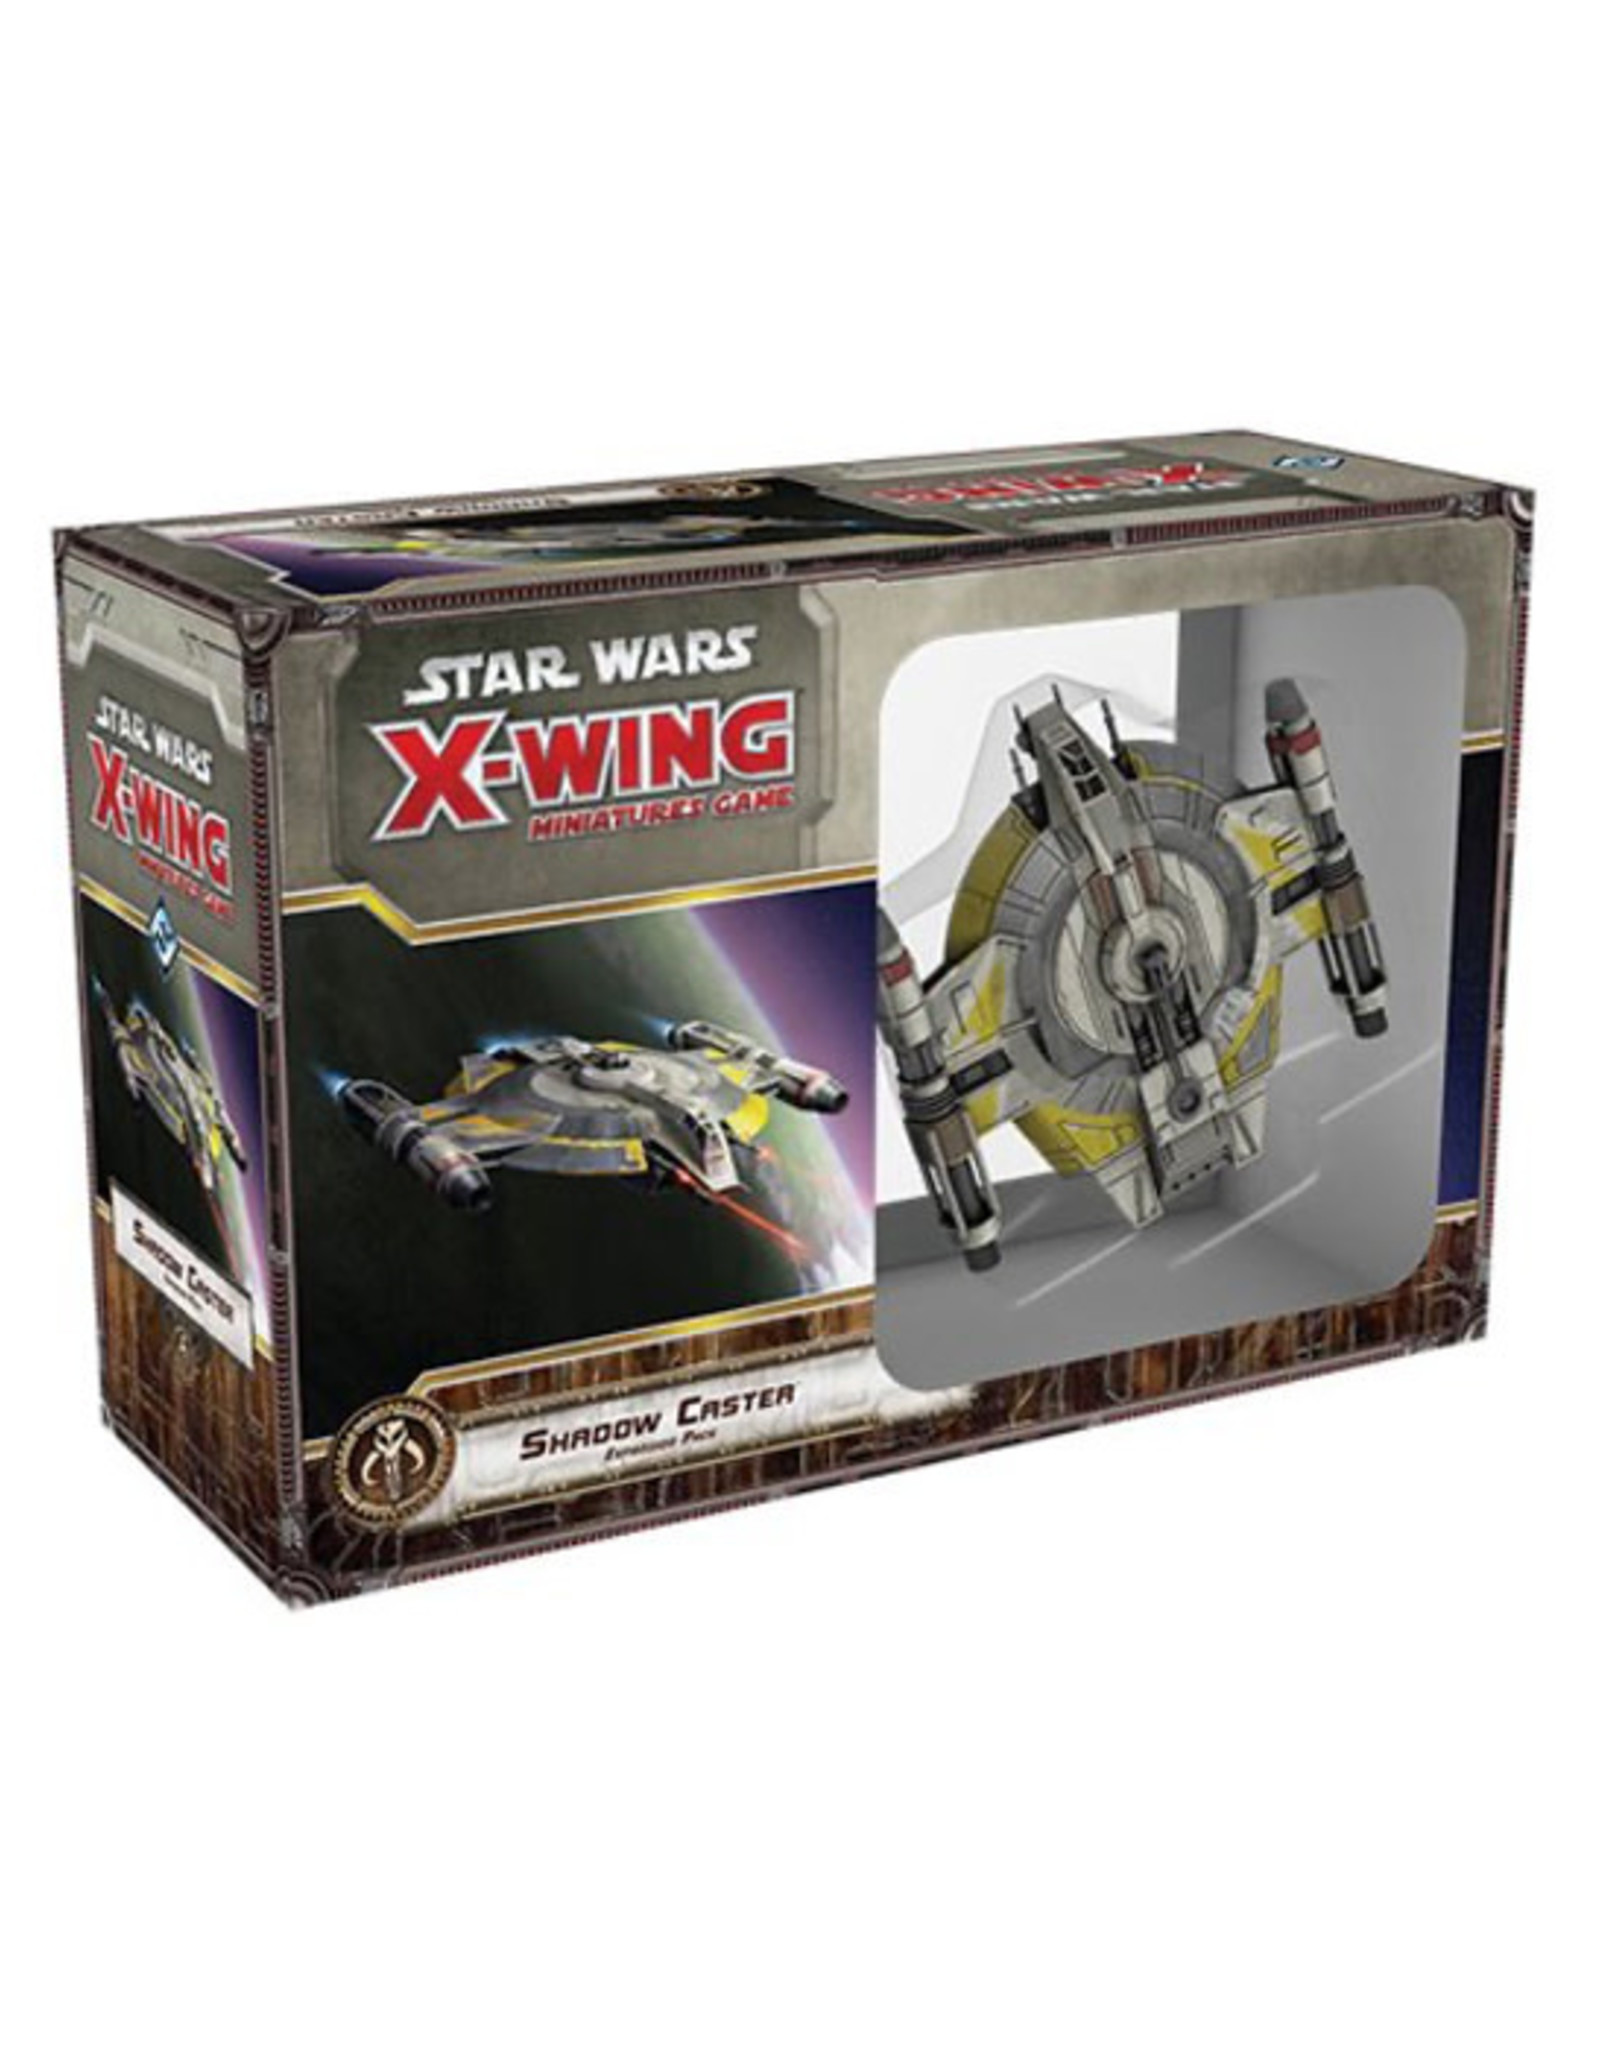 Fantasy Flight Games Star Wars: X-Wing - Shadow Caster Expansion